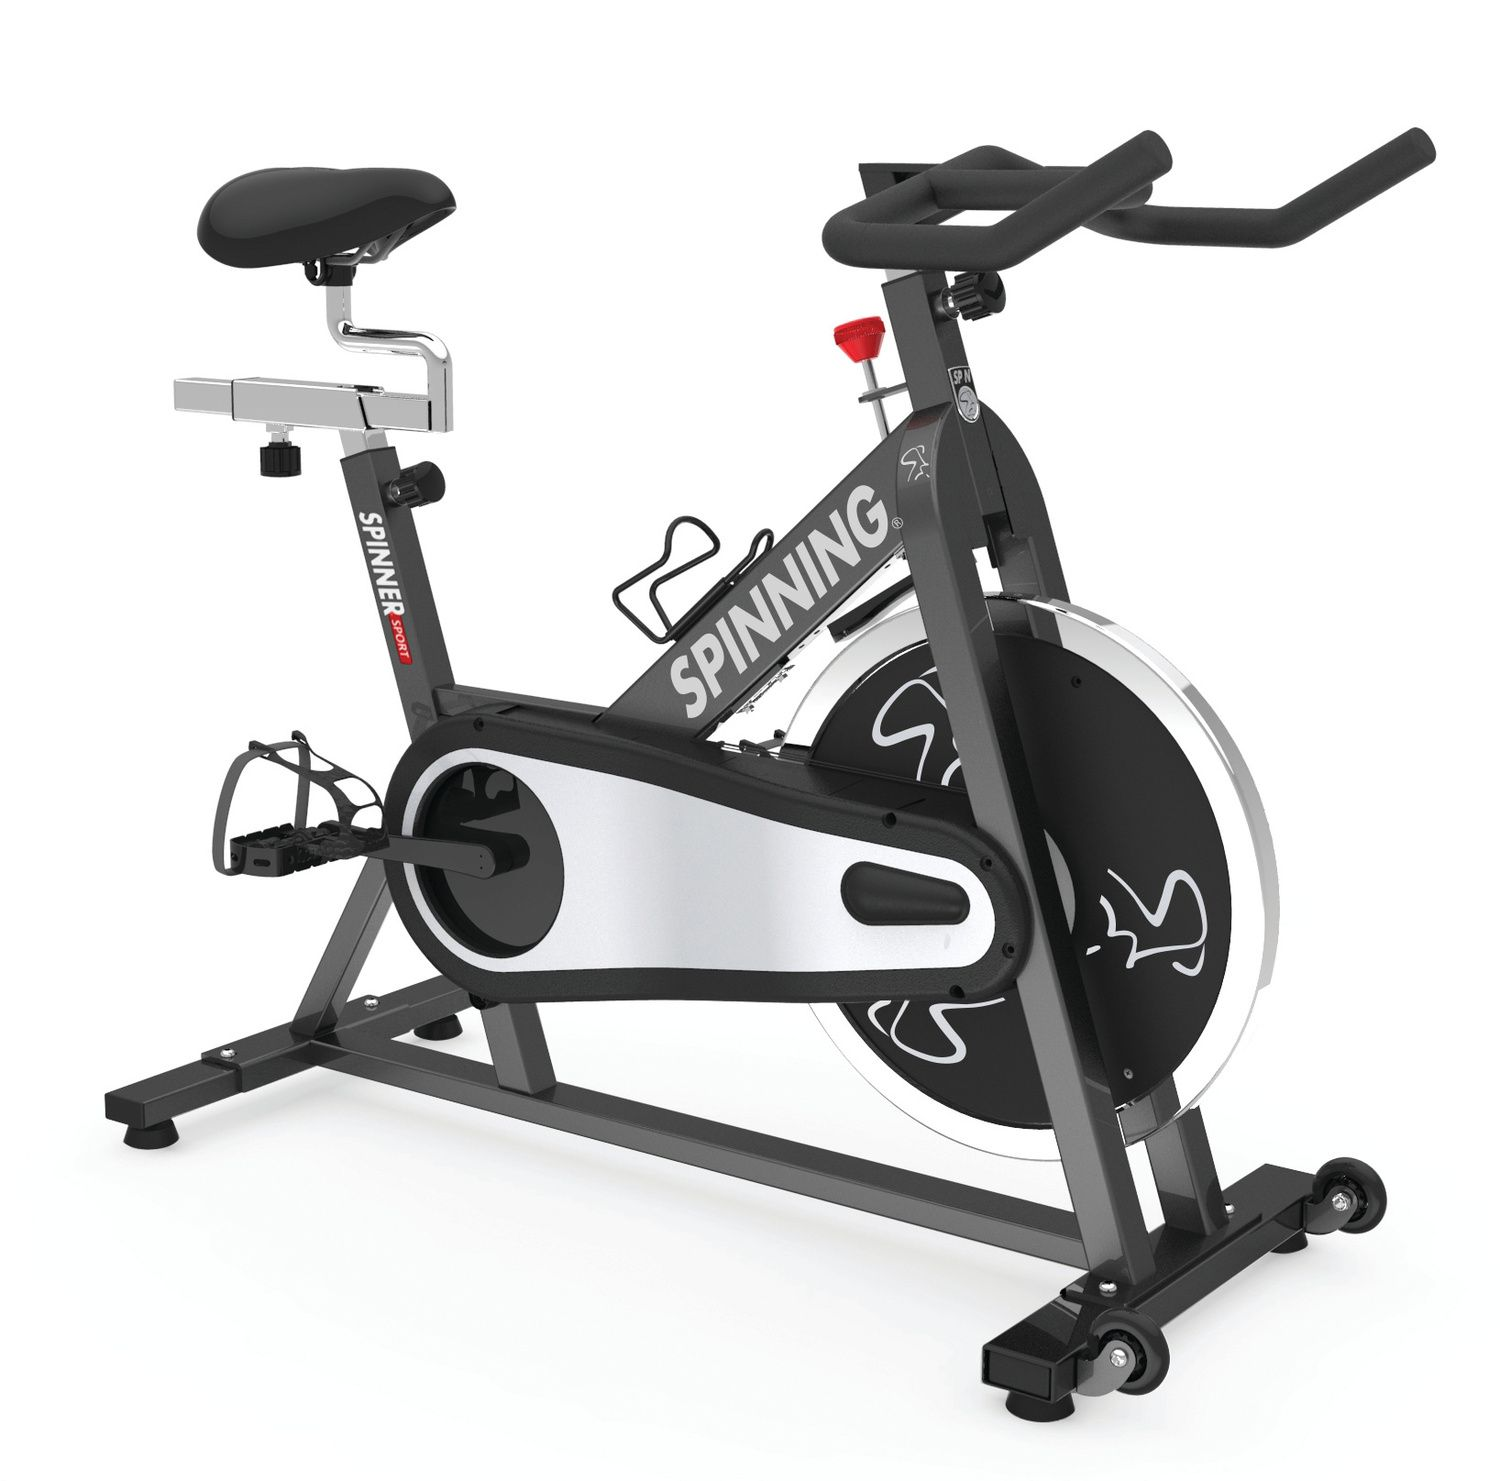 Spinner Sport Exercise Bike Buy The Bike That Started It All Indoor Cycling Bike Best Exercise Bike Biking Workout